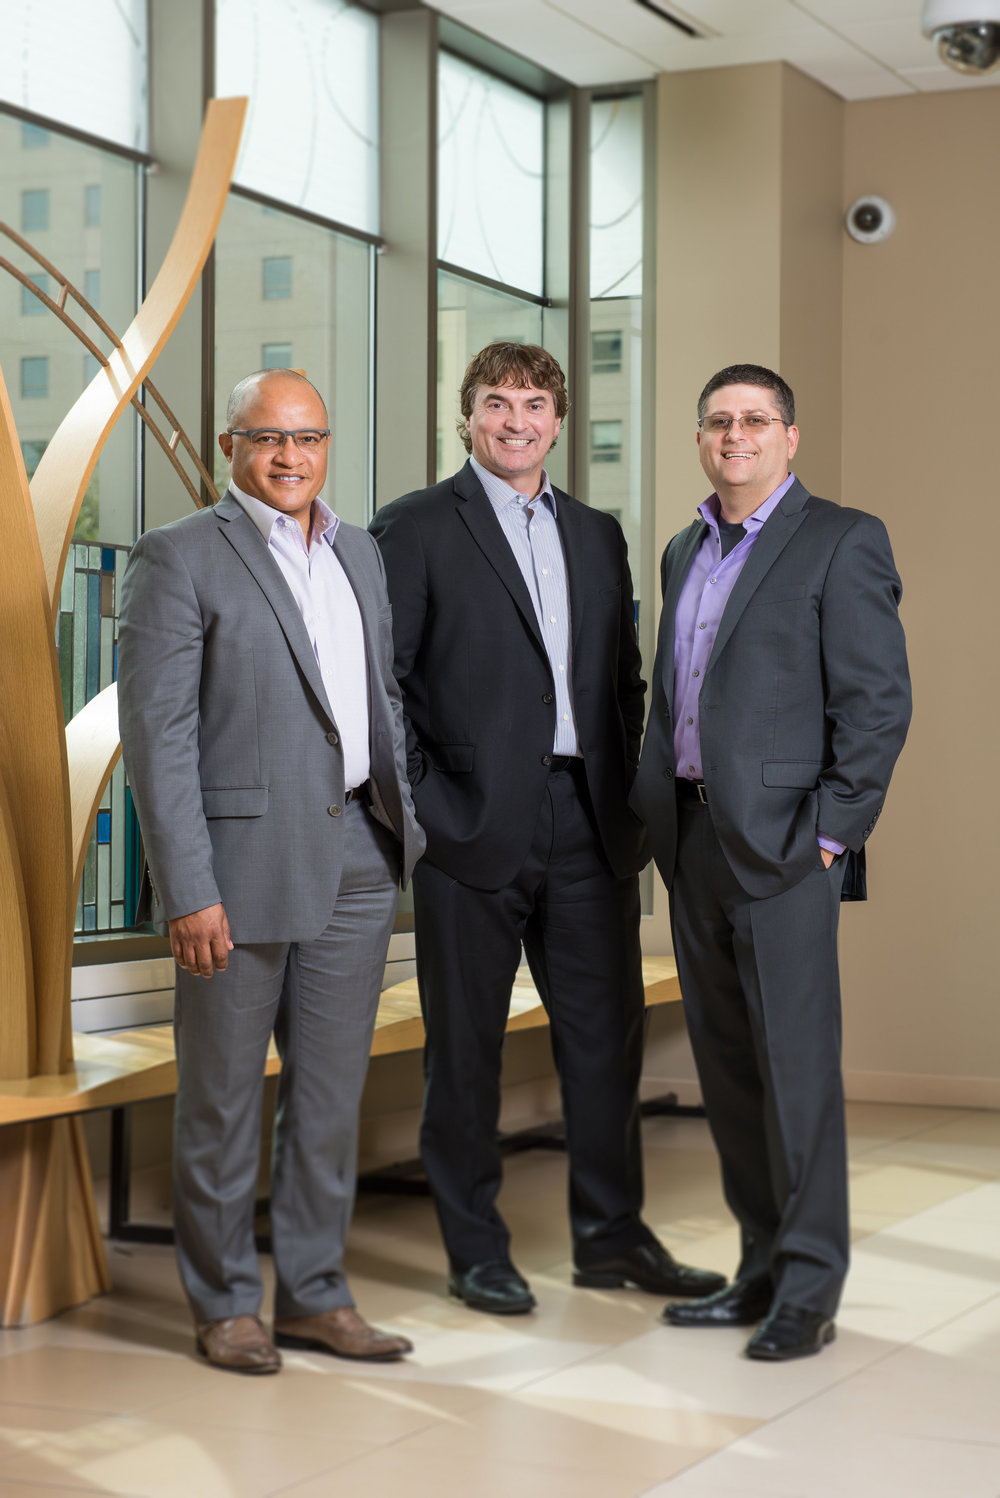 Sonex leadership team. From left to right: Darryl Barnes, Jay Smith, and Aaron Keenan.  Photo courtesy of Sonex Health.